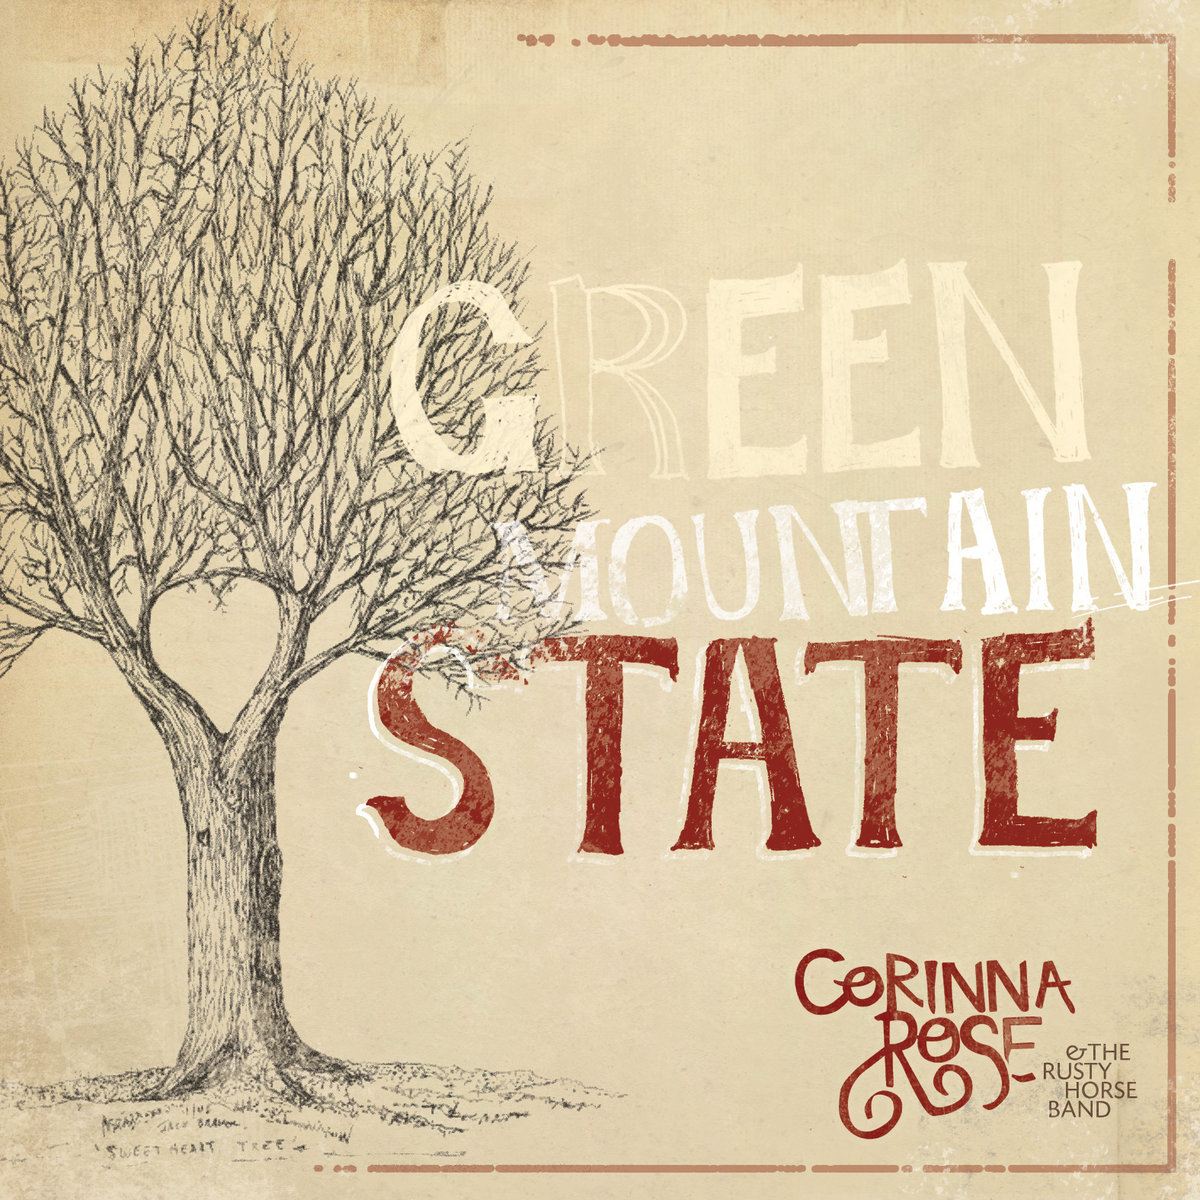 Green Mountain State by Corinna Rose & The Rusty Horse Band